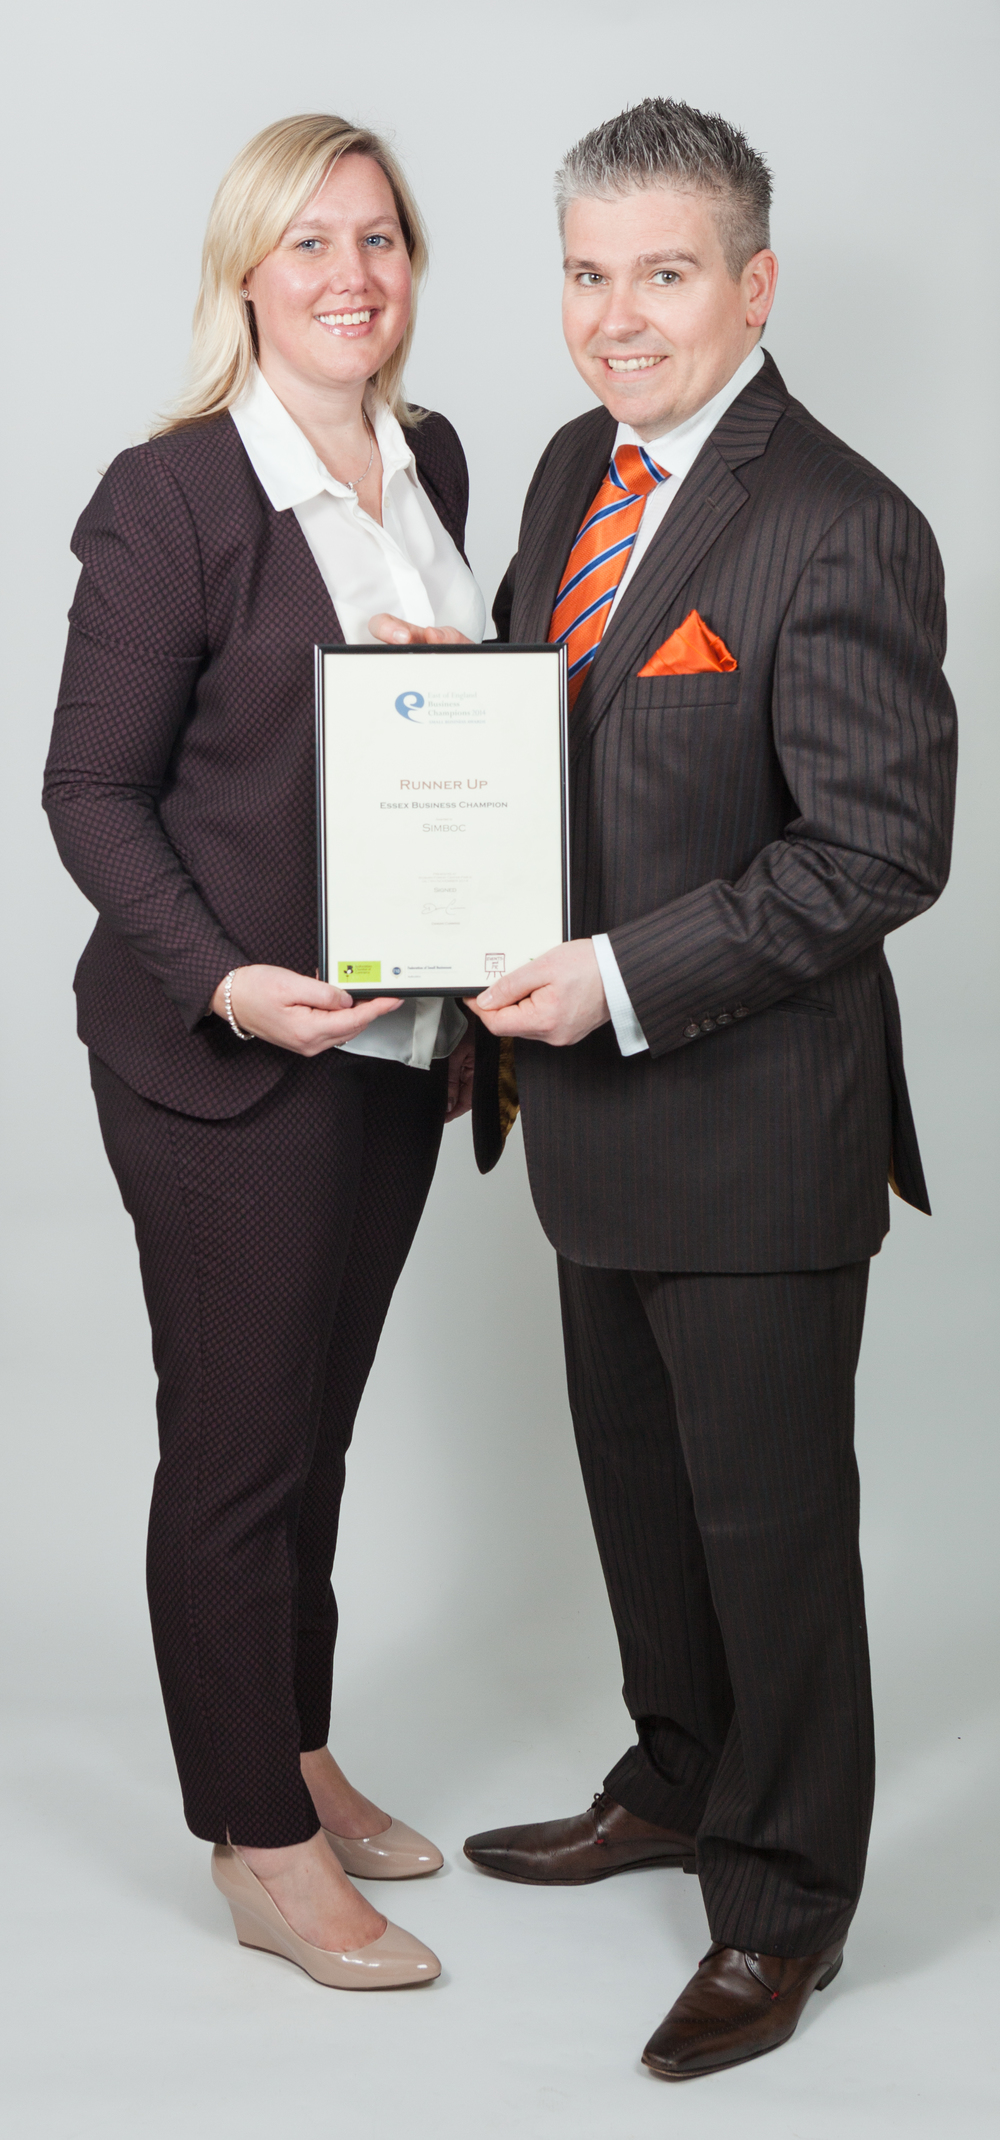 Jo and Dave - Holding Award_SimbocLtd_6938.jpg